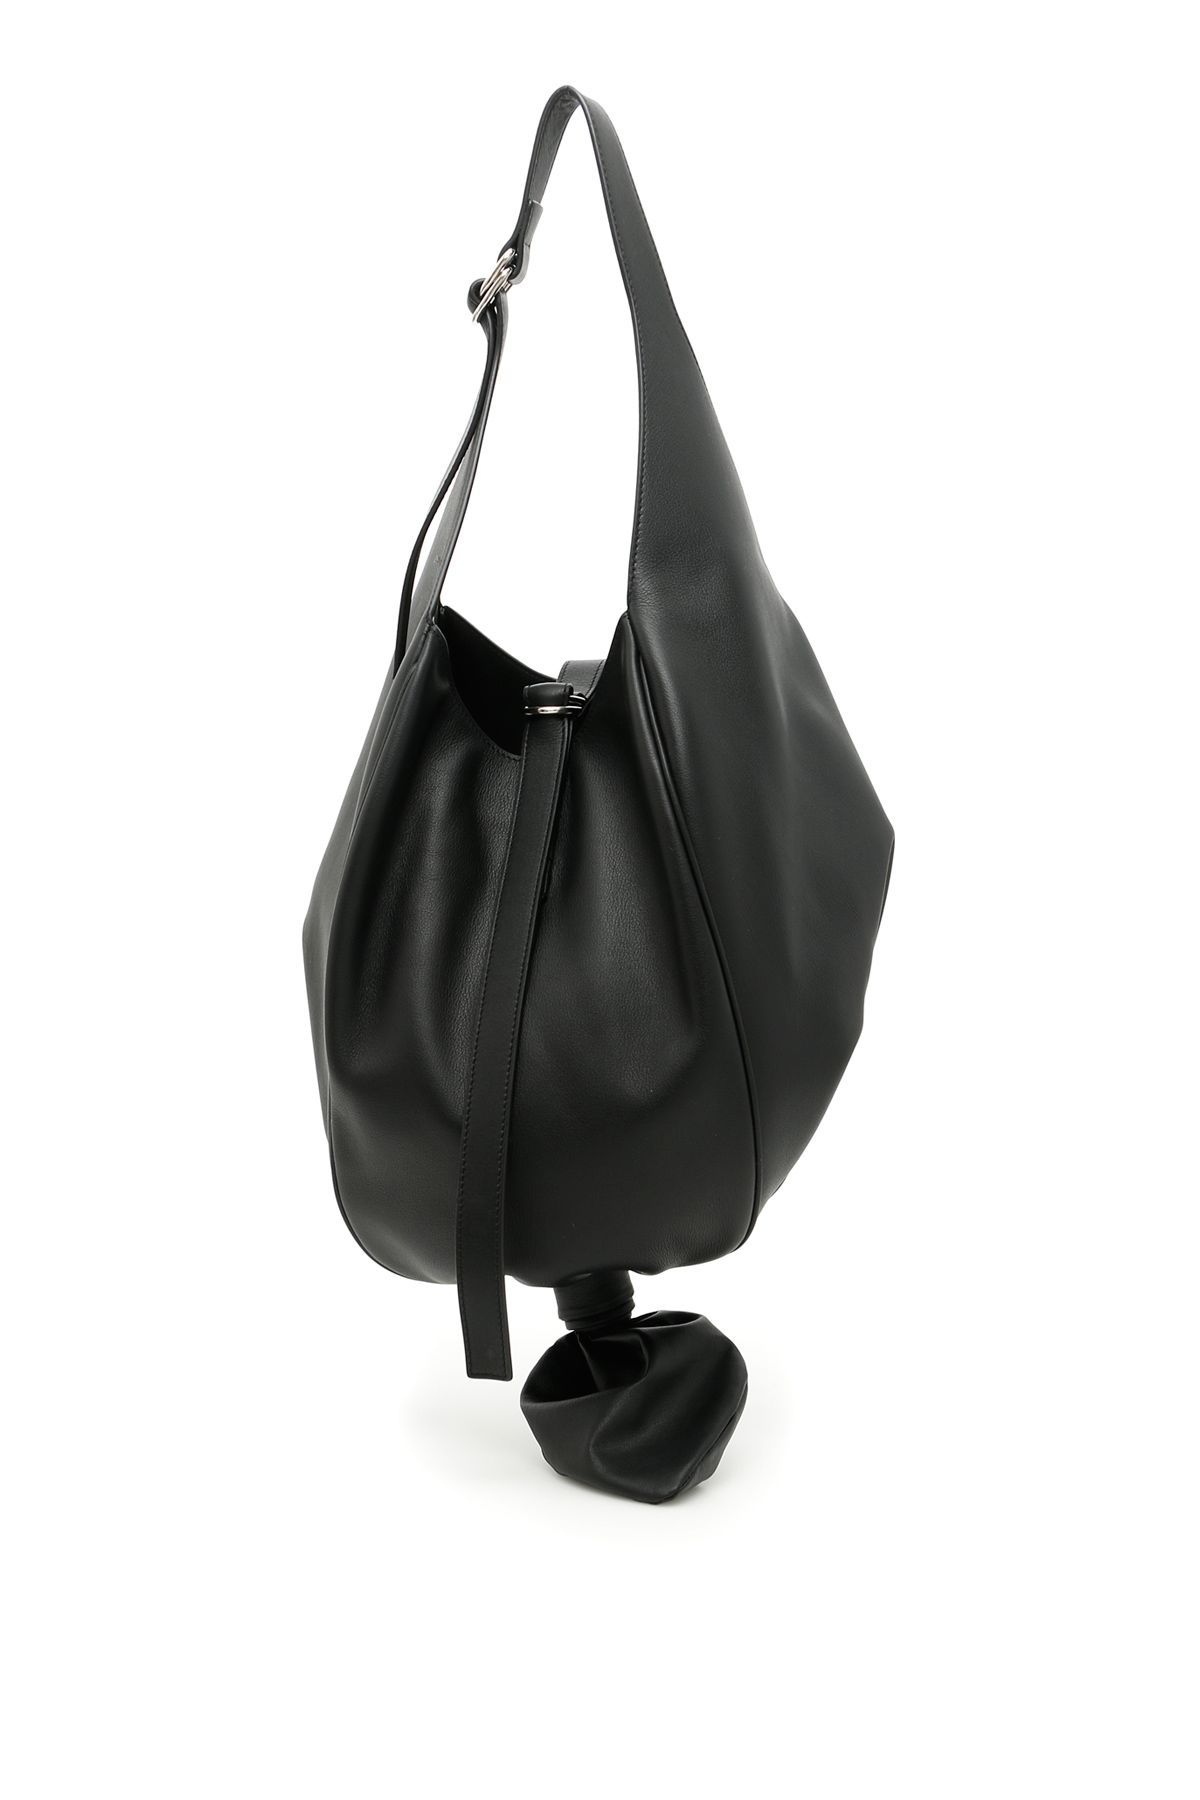 JW Anderson Knot Hobo bag For Cheap For Sale Cheap Free Shipping jeboqG